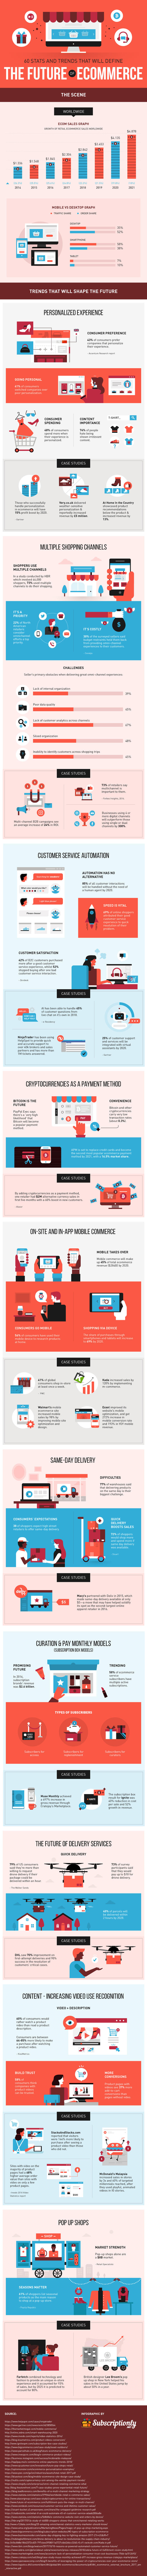 Stay Ahead in Ecommerce with These Facts and Trends [Infographic]